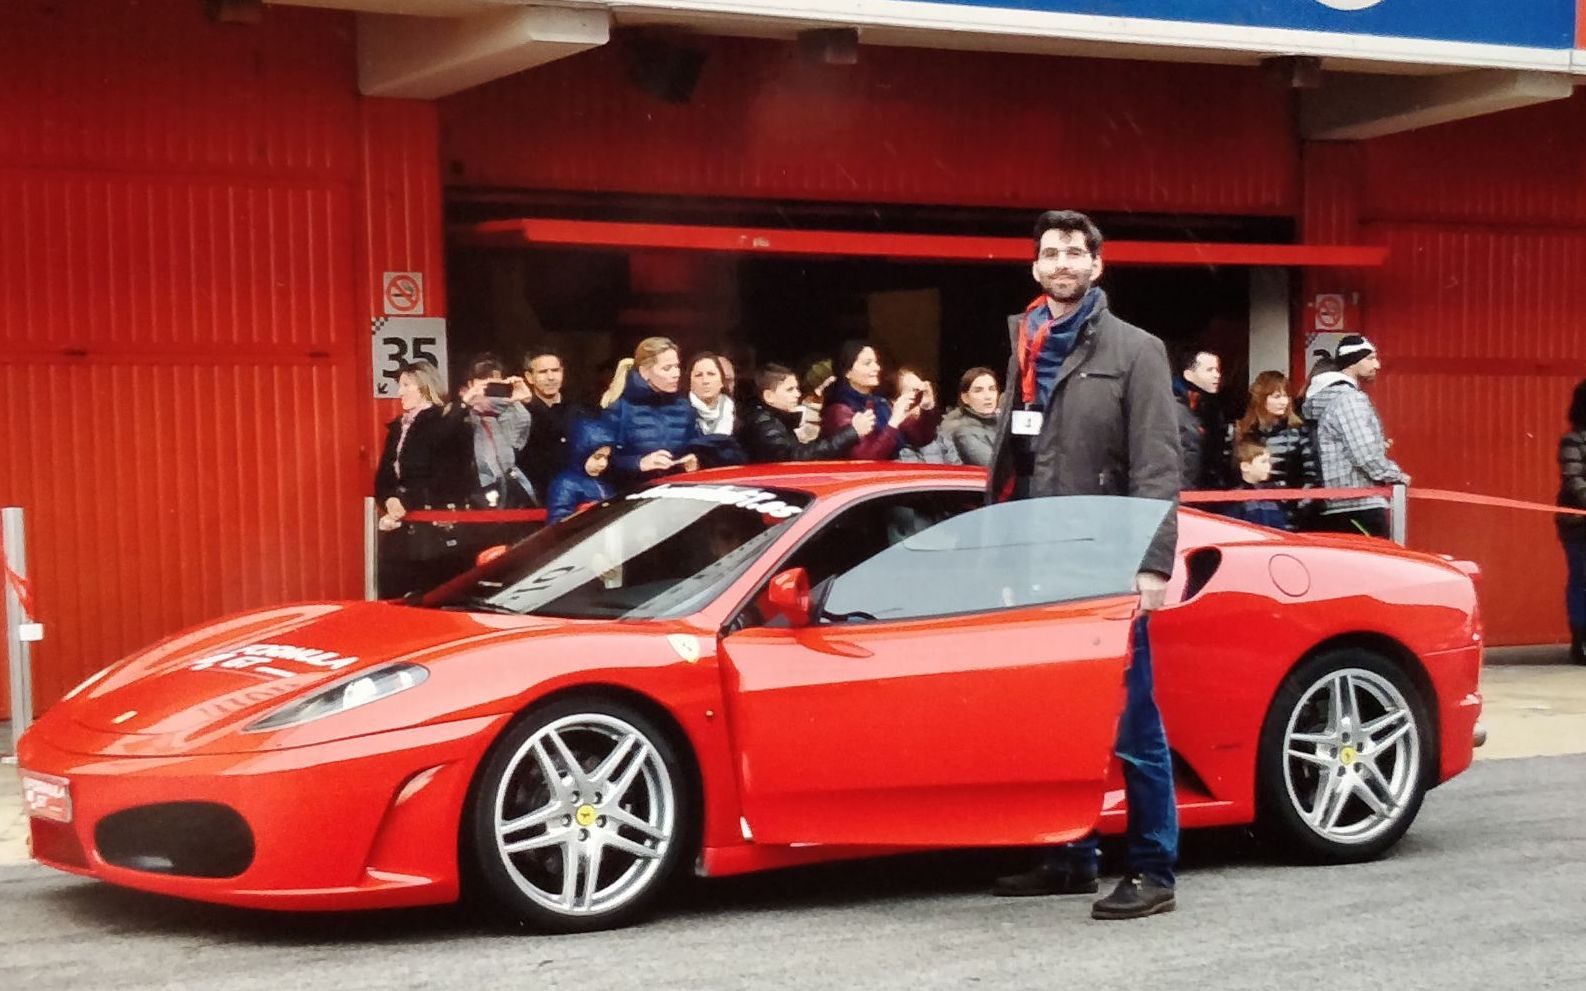 David also drove a Ferrari (like Neil Patel), although he is now a Tesla fan. I think we've taken little advantage of this photo in Nelio, so I'll take this opportunity to slip it into this post...